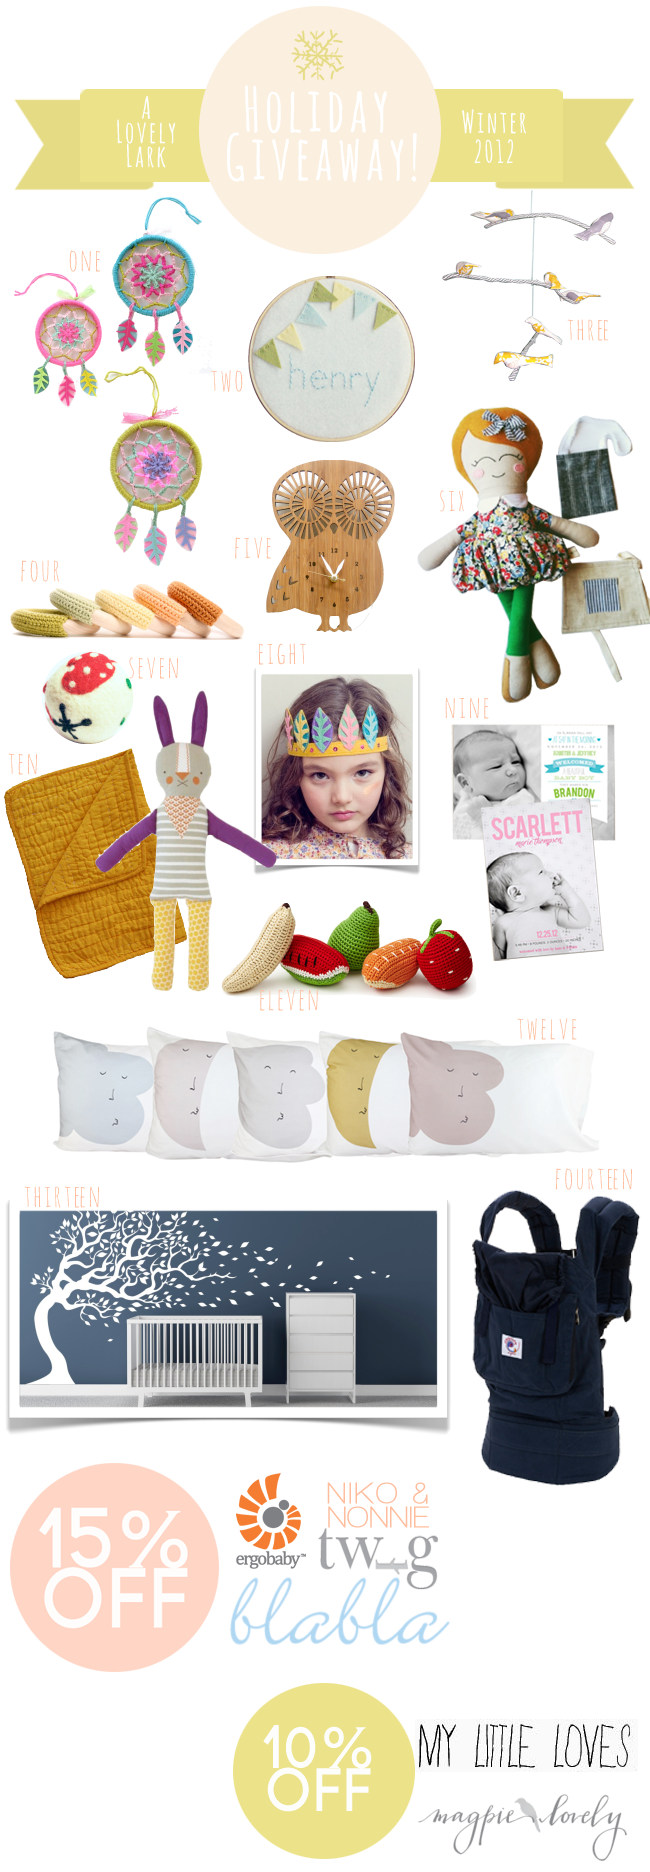 a-lovely-lark-holiday-giveaway-2012